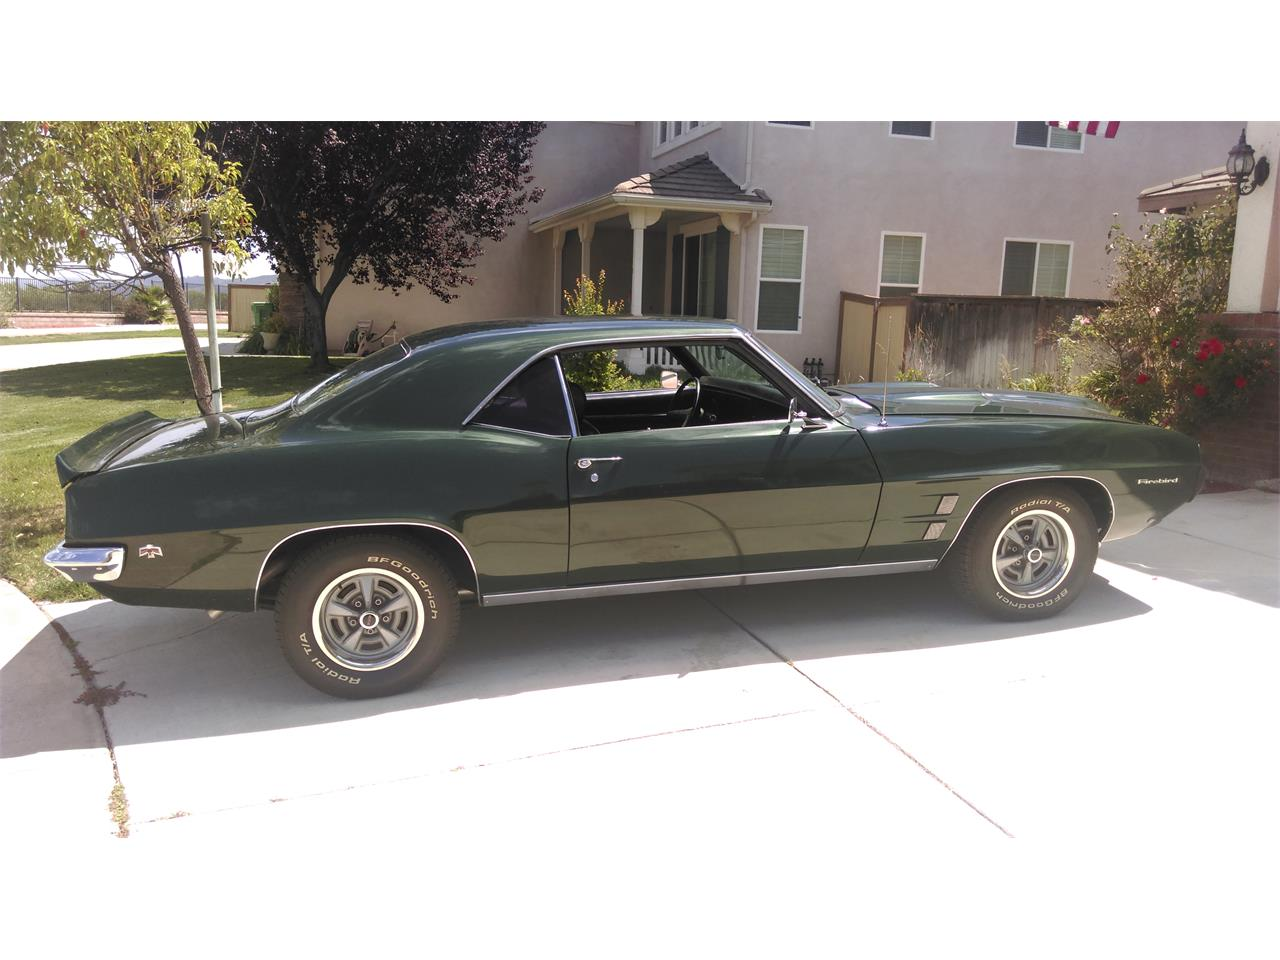 Large Picture of '69 Pontiac Firebird - $25,500.00 - H6D8